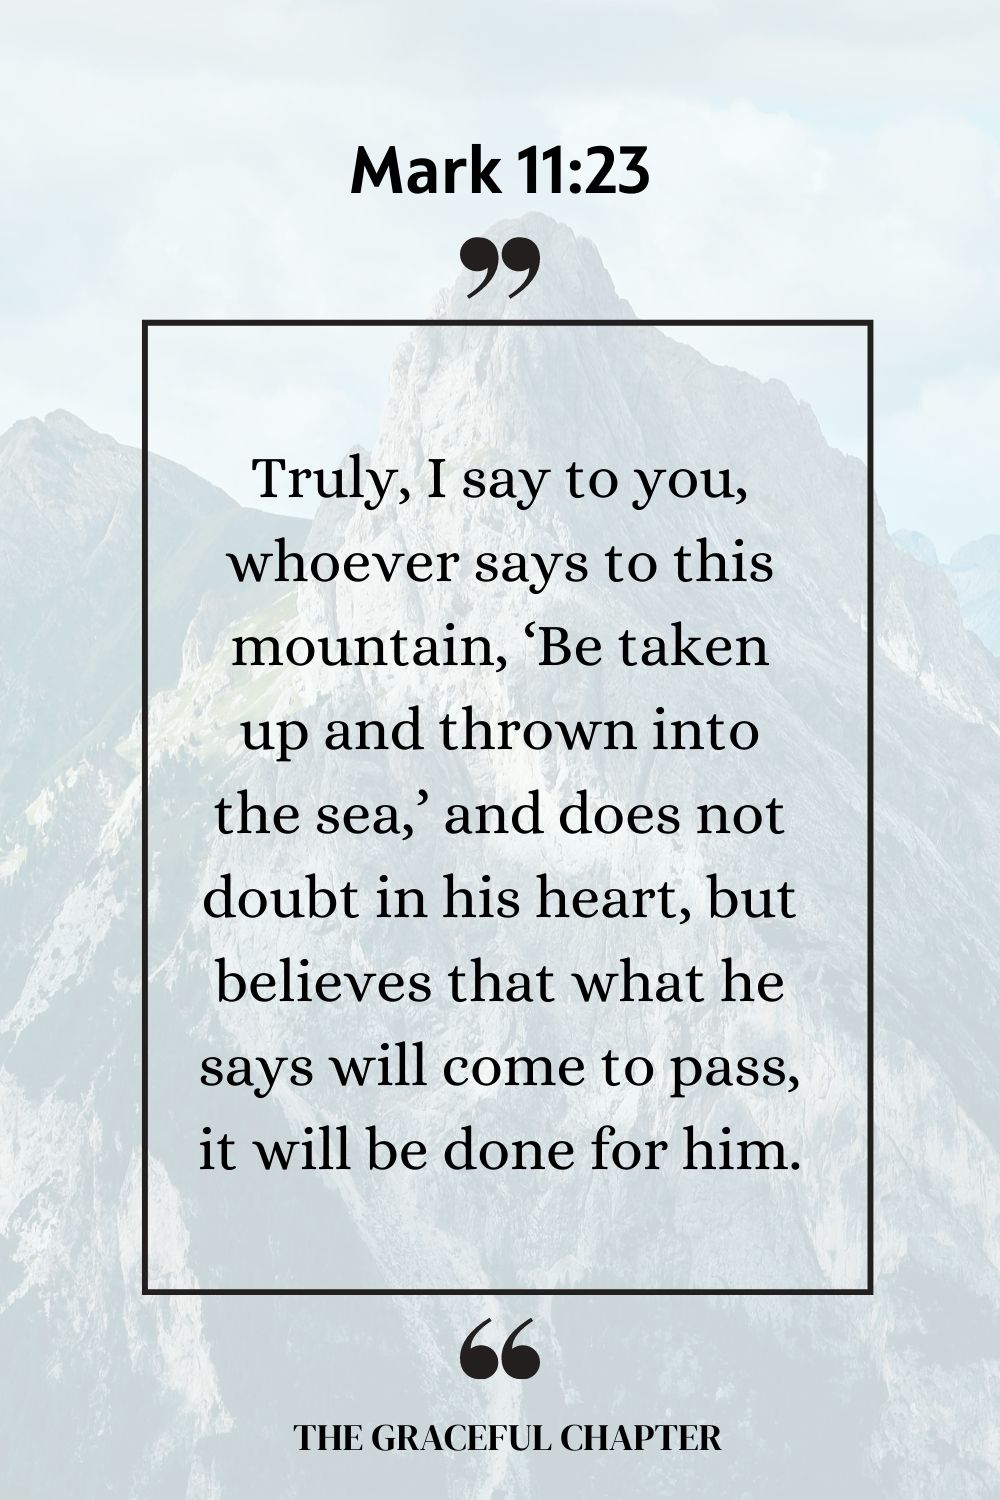 Truly, I say to you, whoever says to this mountain, 'Be taken up and thrown into the sea,' and does not doubt in his heart, but believes that what he says will come to pass, it will be done for him.